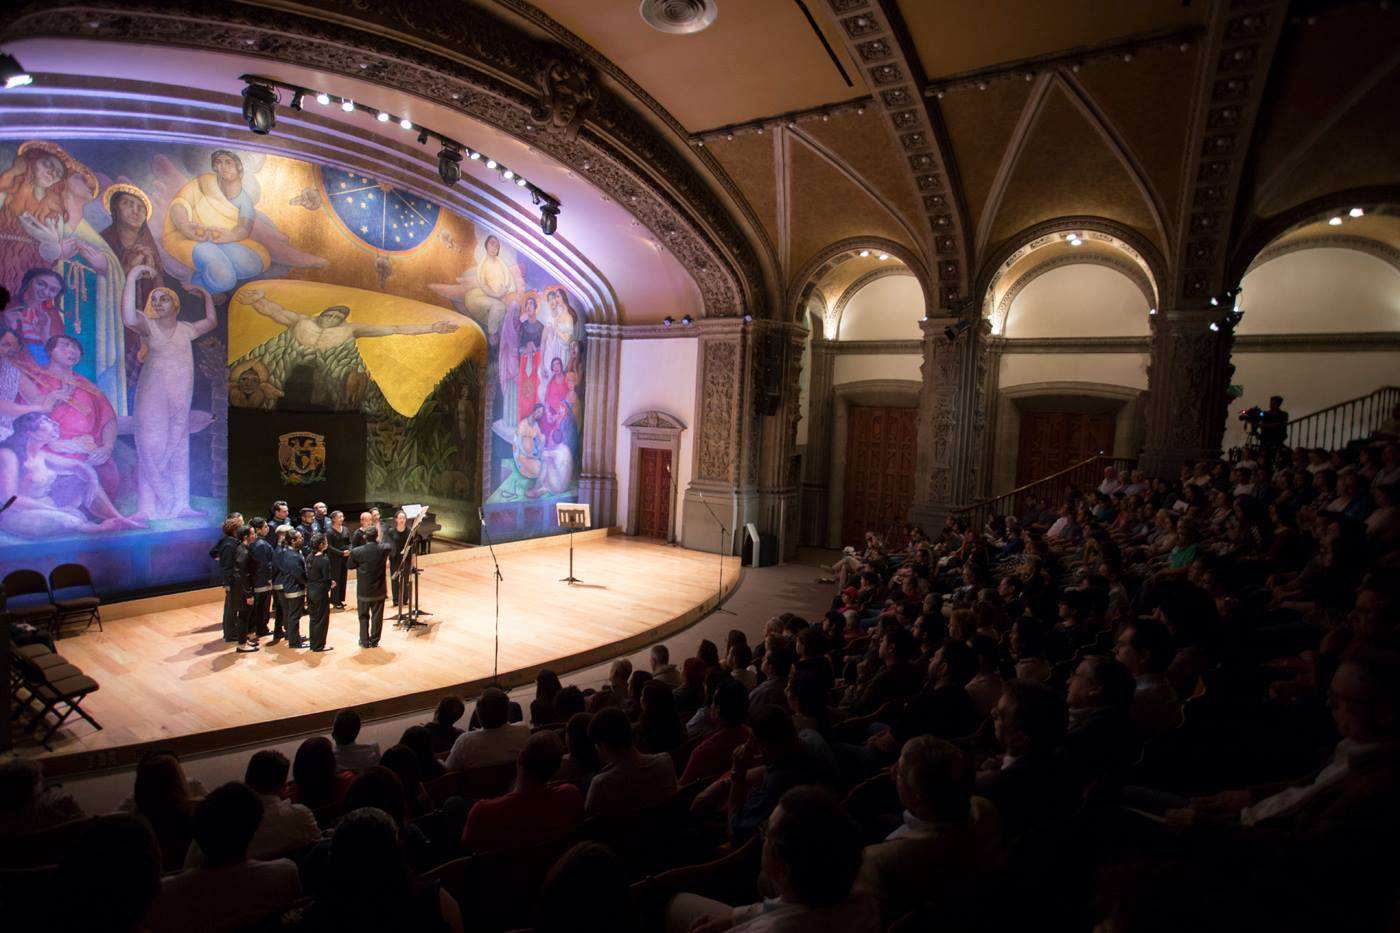 A performance at the San Ildefonso theater for the Festival del Centro Historico